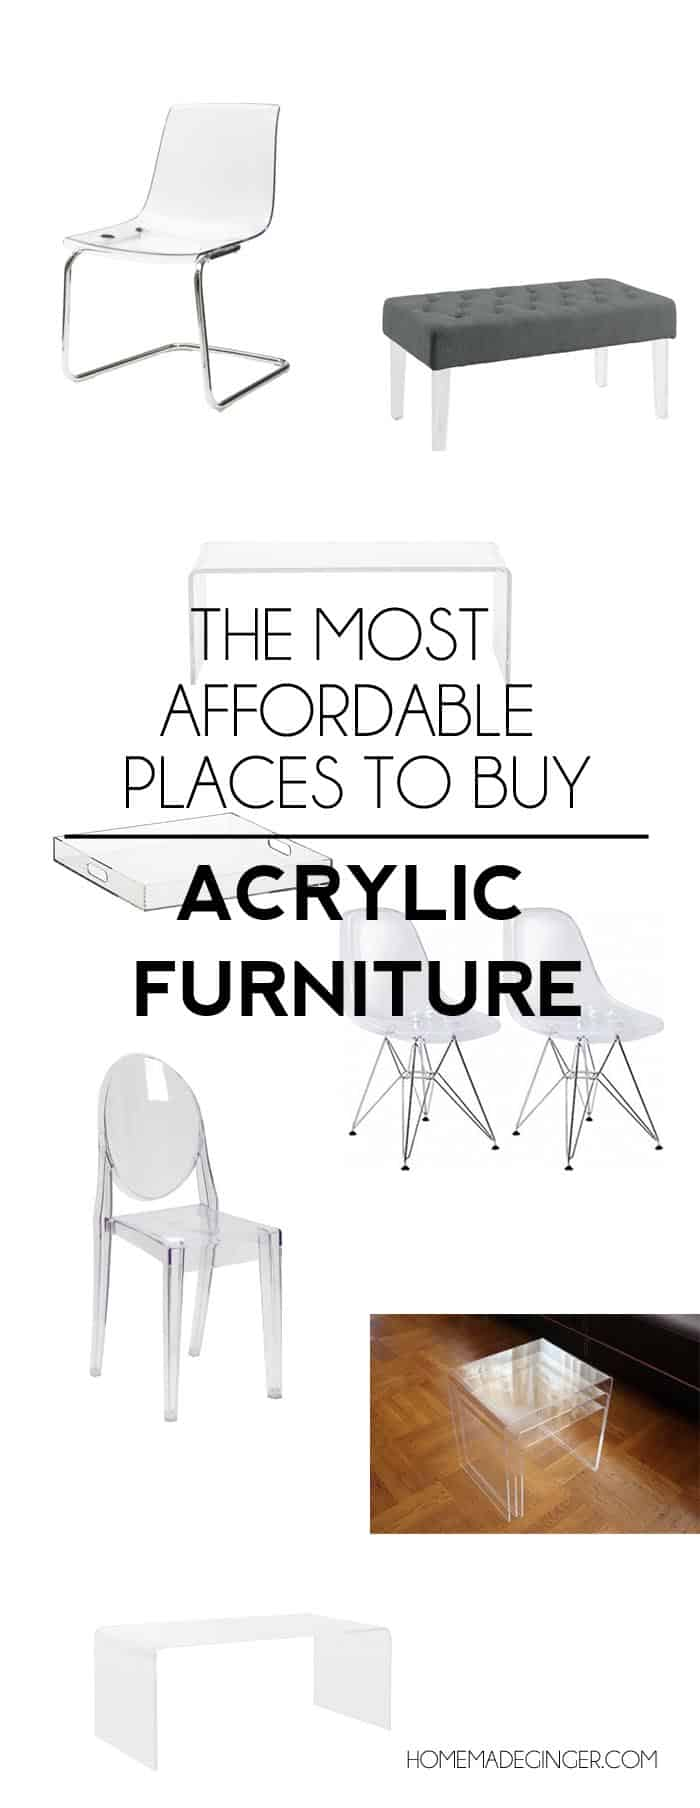 THE MOST AFFORDABLE PLACES TO BUY ACRYLIC FURNITURE1